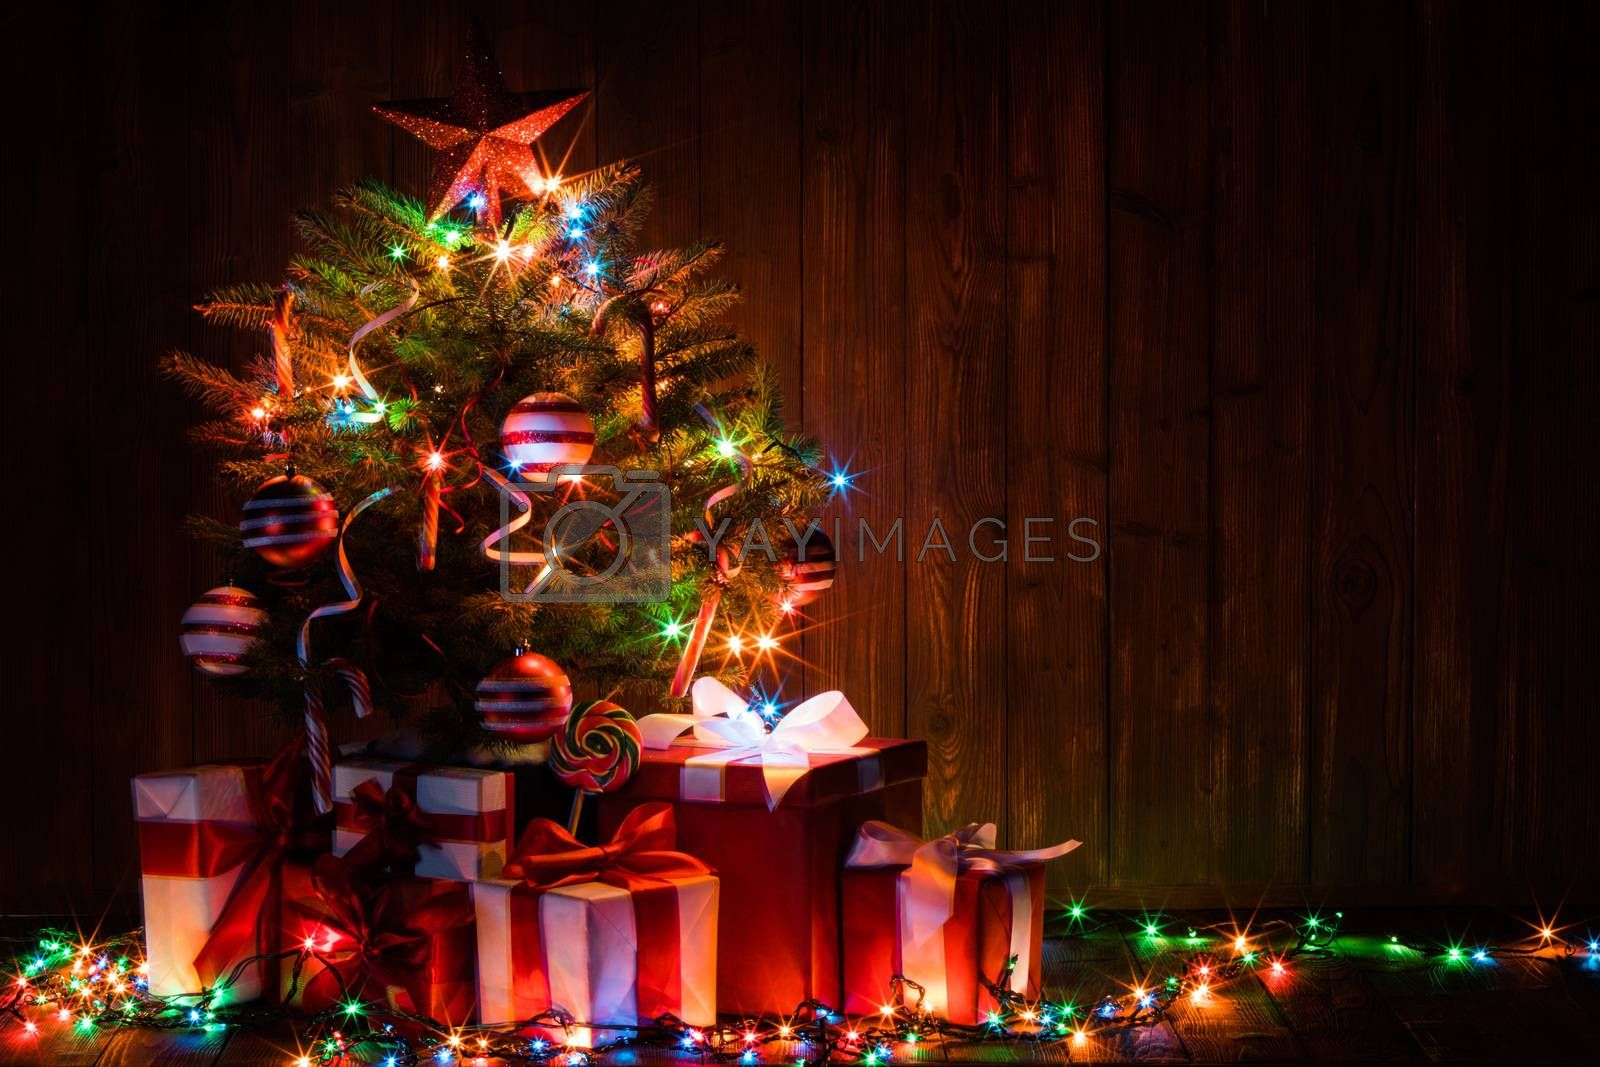 Decorated lighted Christmas tree and gift boxes on wooden background